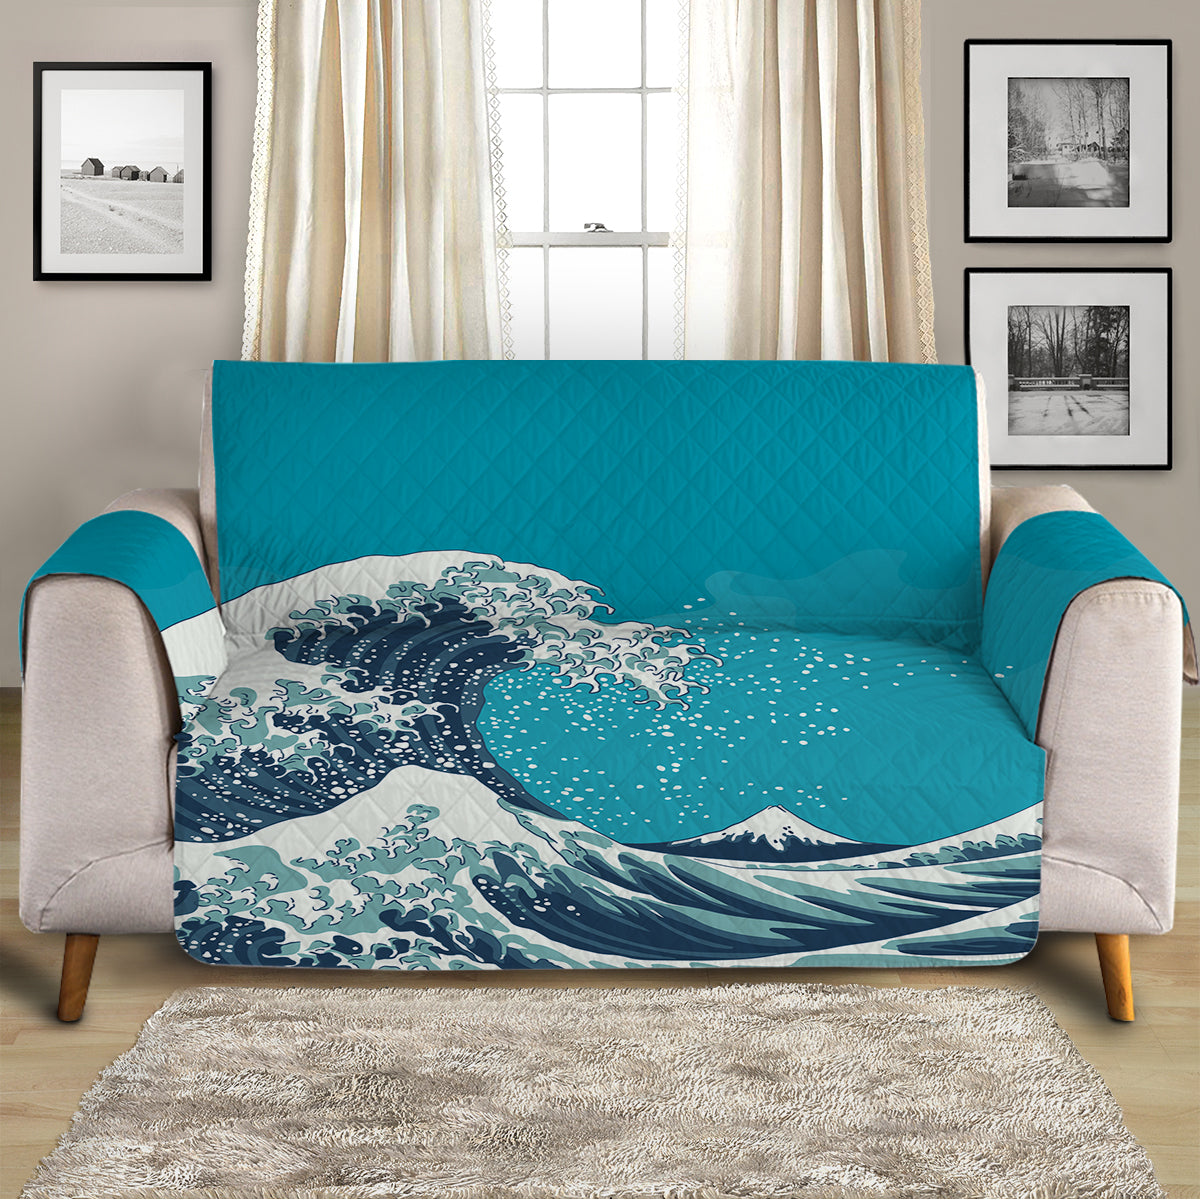 The Great Wave Sofa Cover